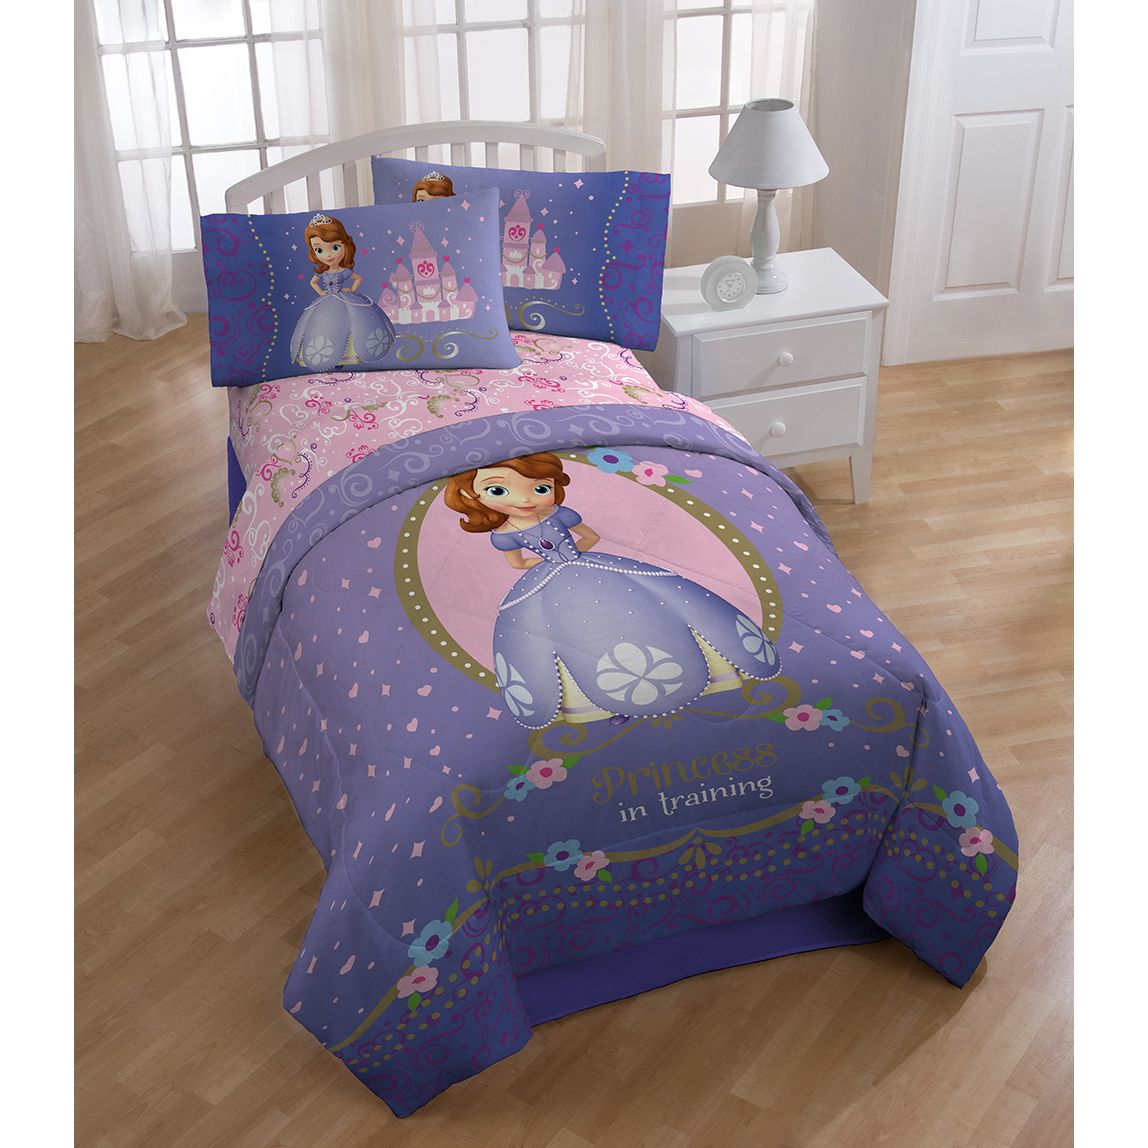 Disney Sofia First Princess In Training 10 Piece Bed In A